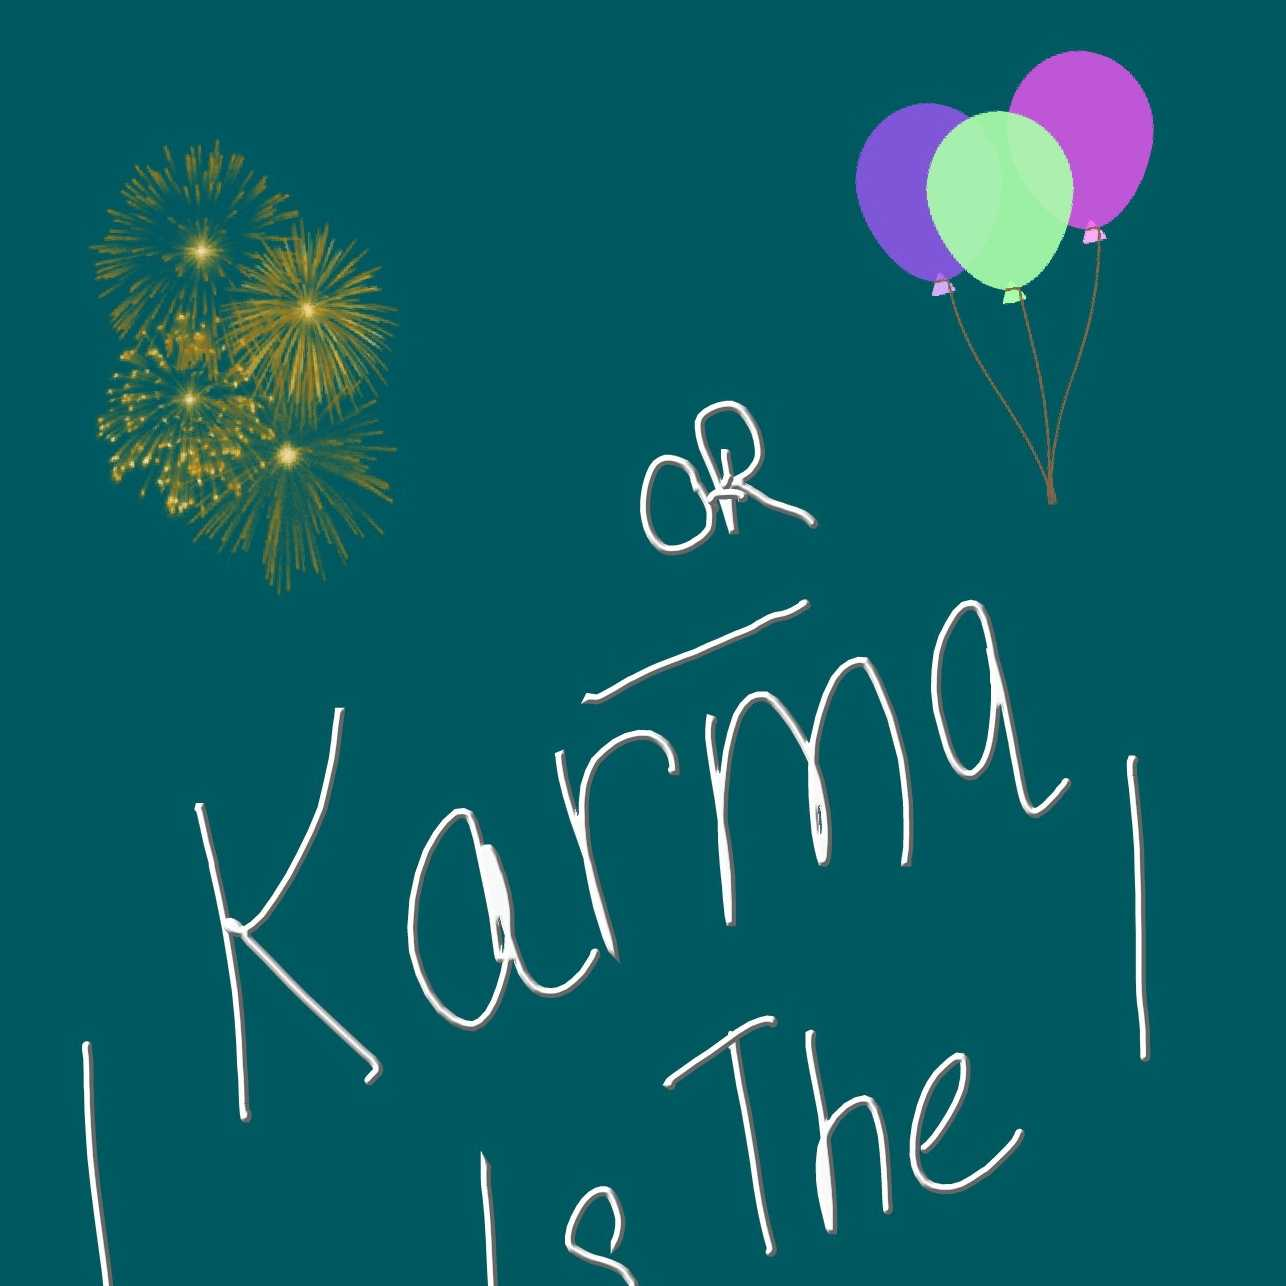 KARMA IS THE RISK YOU TAKE.m4a